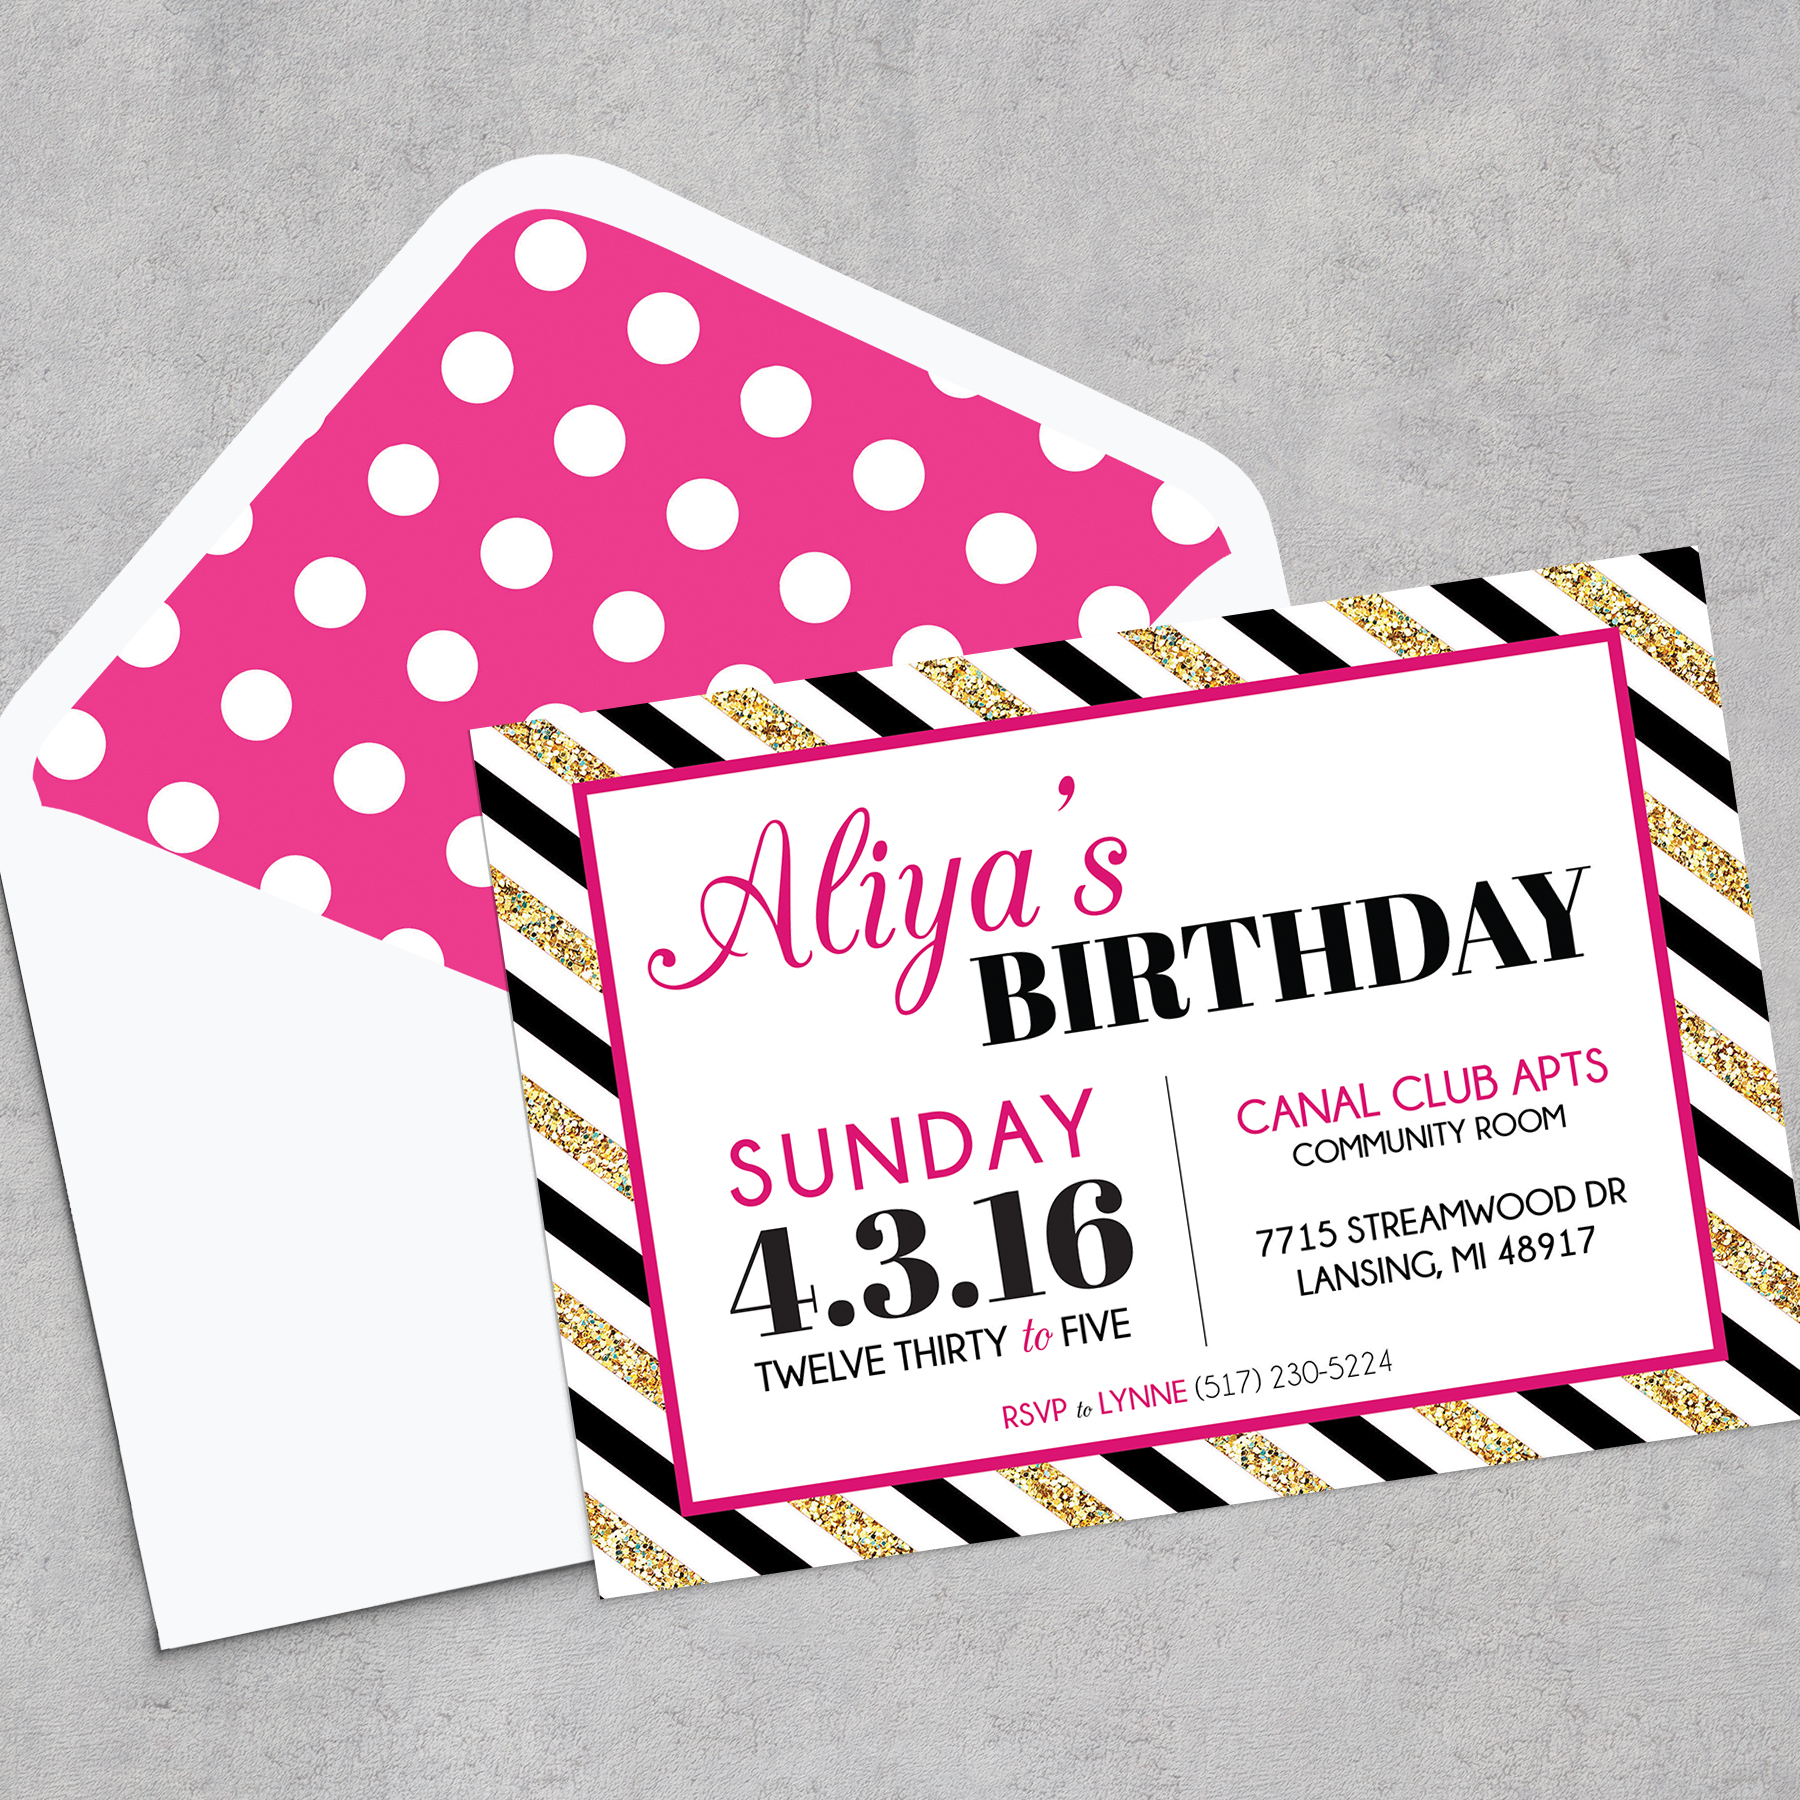 Free E-Mail Invitations was nice invitation layout